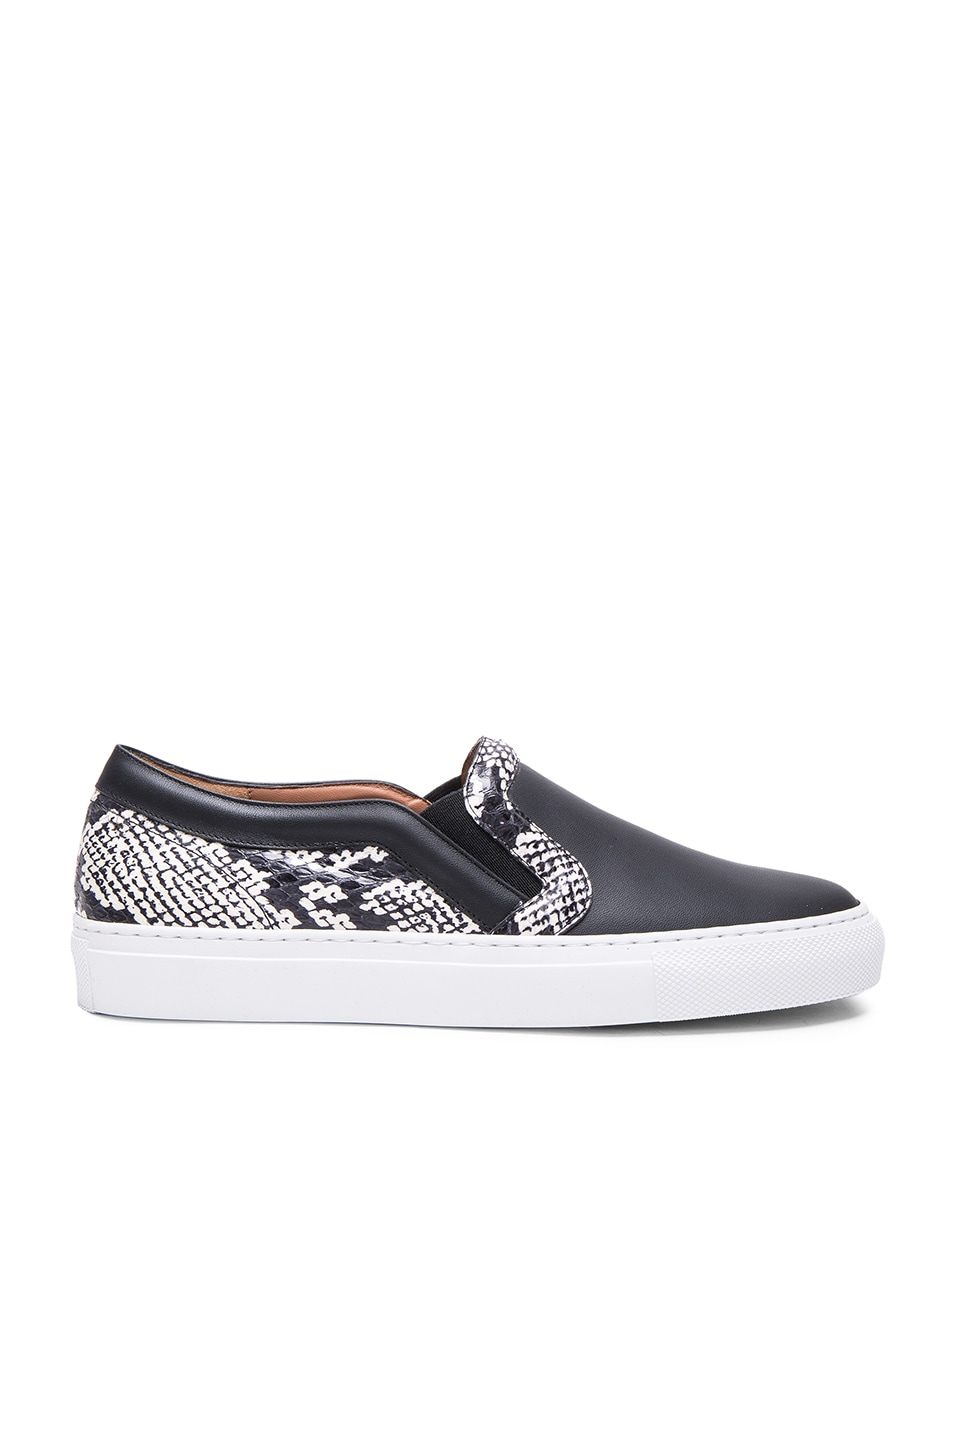 Image 1 of Givenchy Low Skate Elaphe Sneakers in Black & White